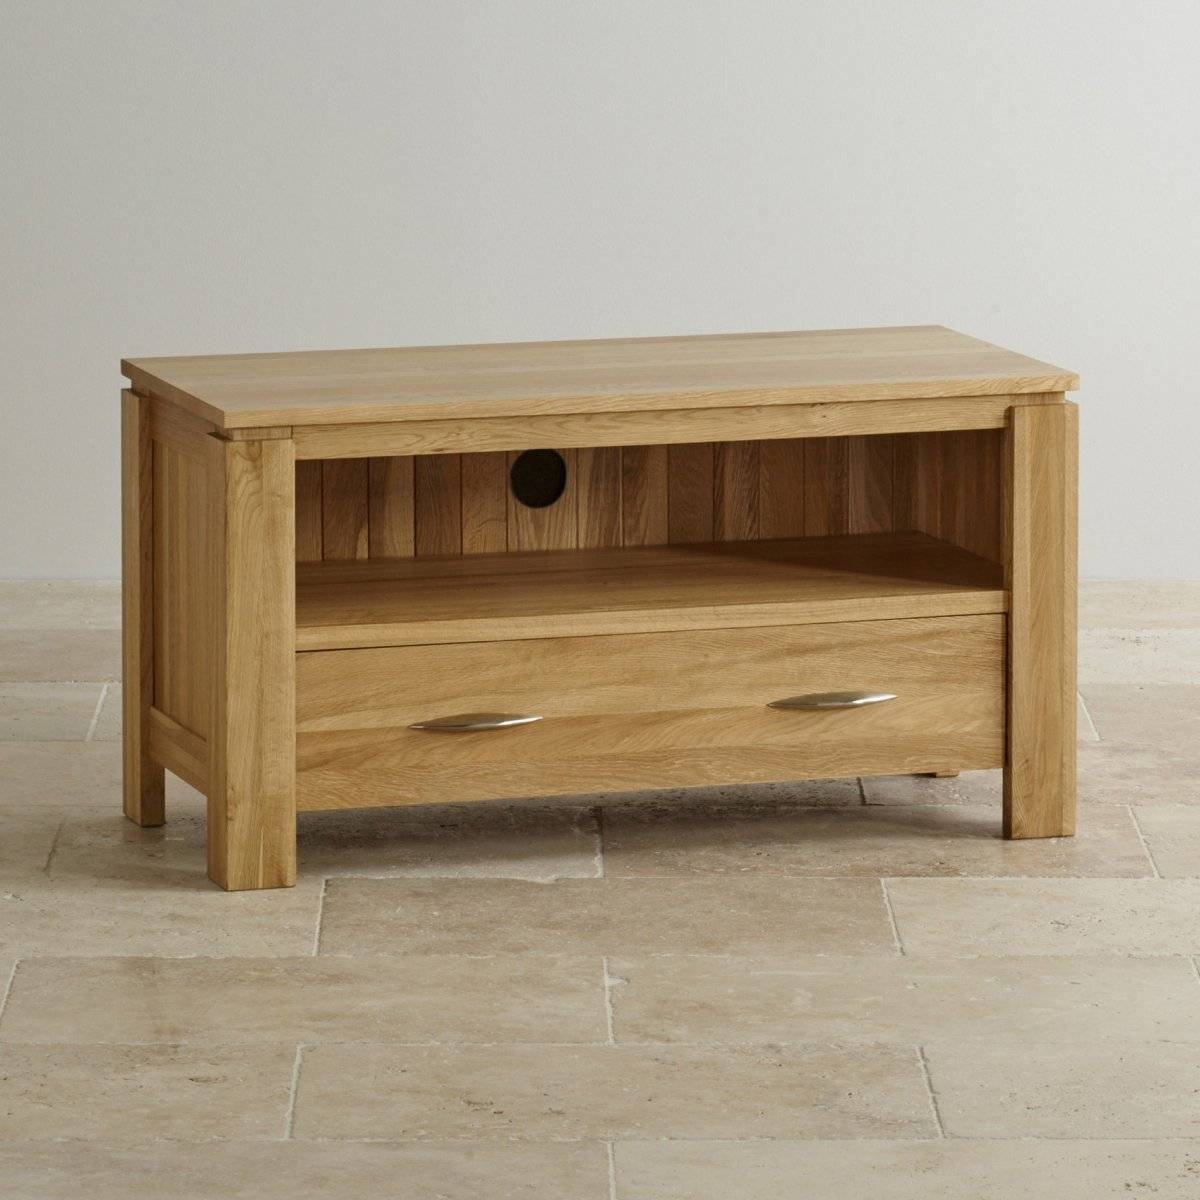 Galway Natural Solid Oak Tv + Dvd Stand | Living Room Furniture with regard to Small Tv Cabinets (Image 3 of 15)